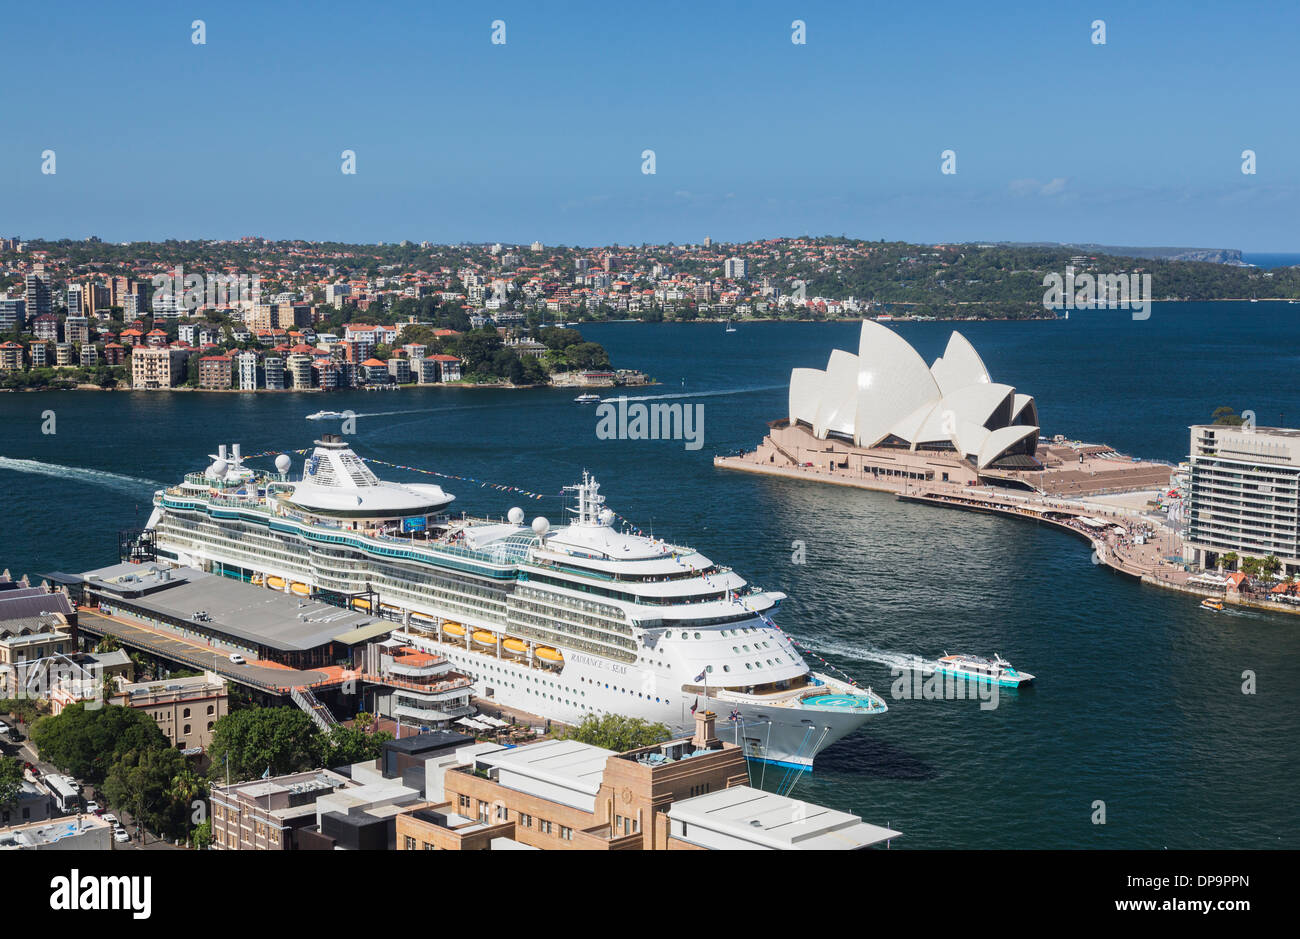 Sydney Harbour with the Radiance of the Seas Cruise ship ...